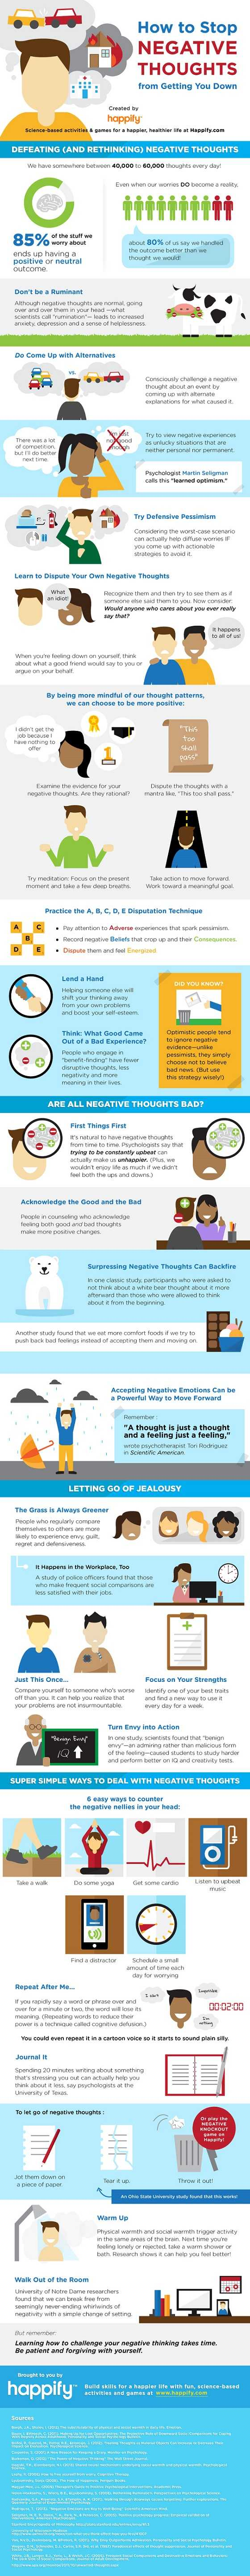 Keep Negativity from Getting You Down with This Infographic